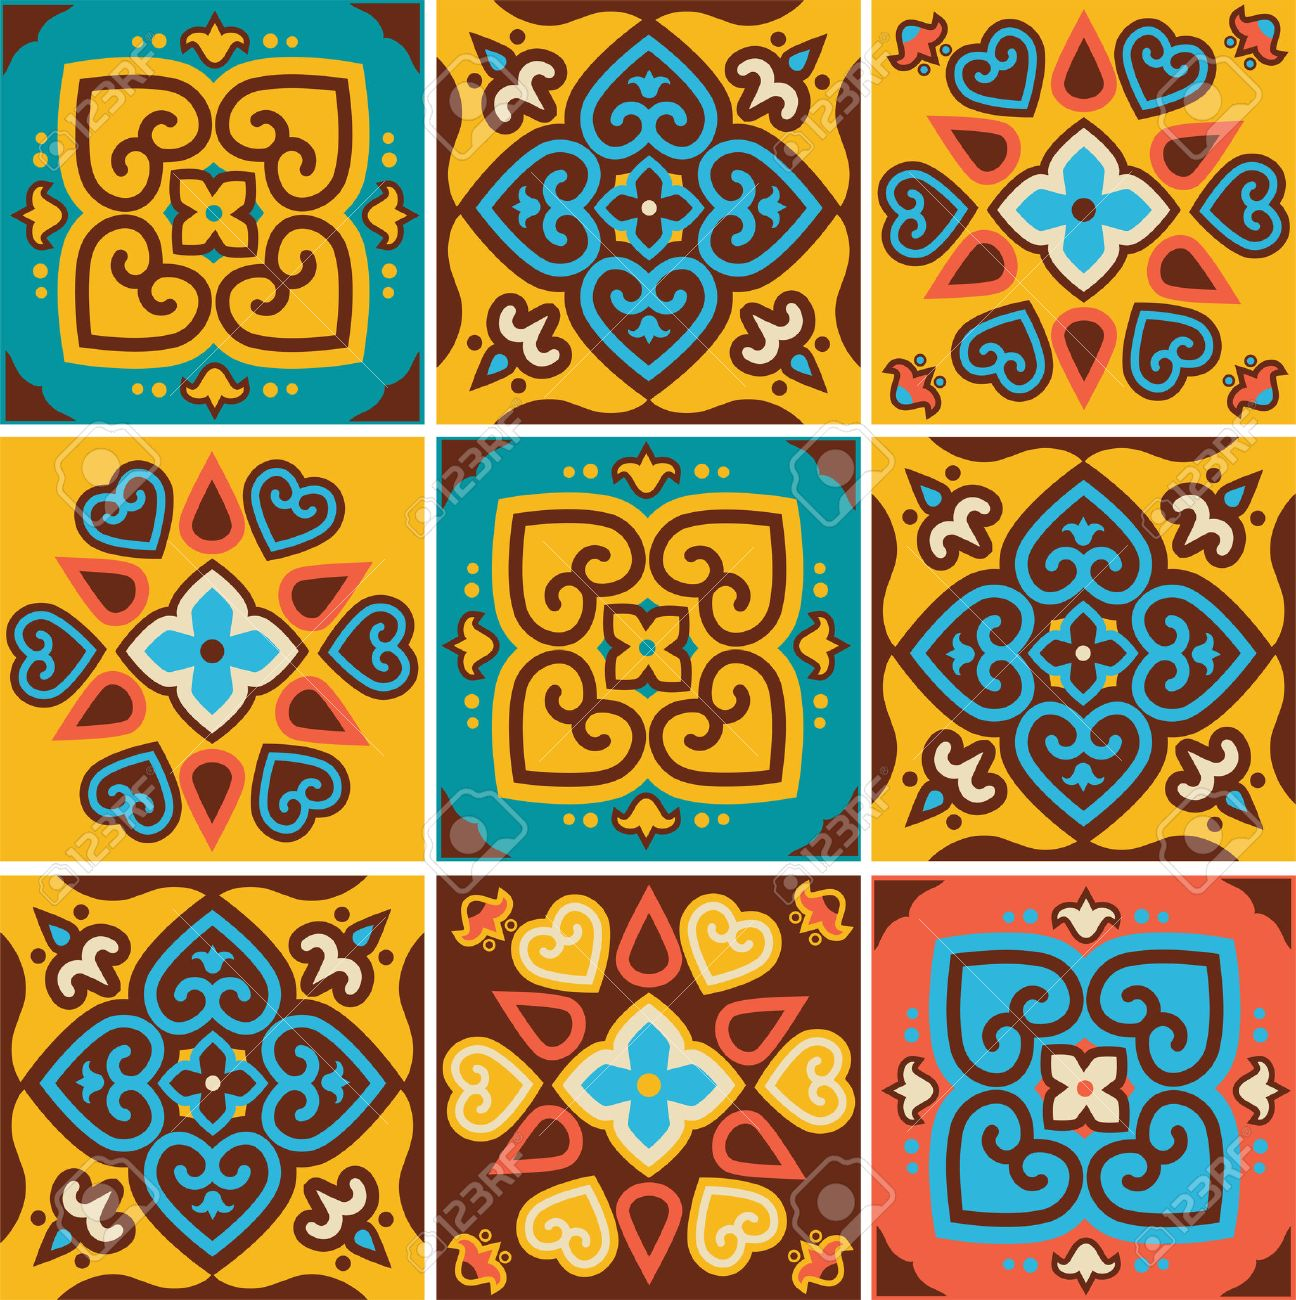 Traditional Ceramic Tiles Patterns Royalty Free Cliparts, Vectors ...